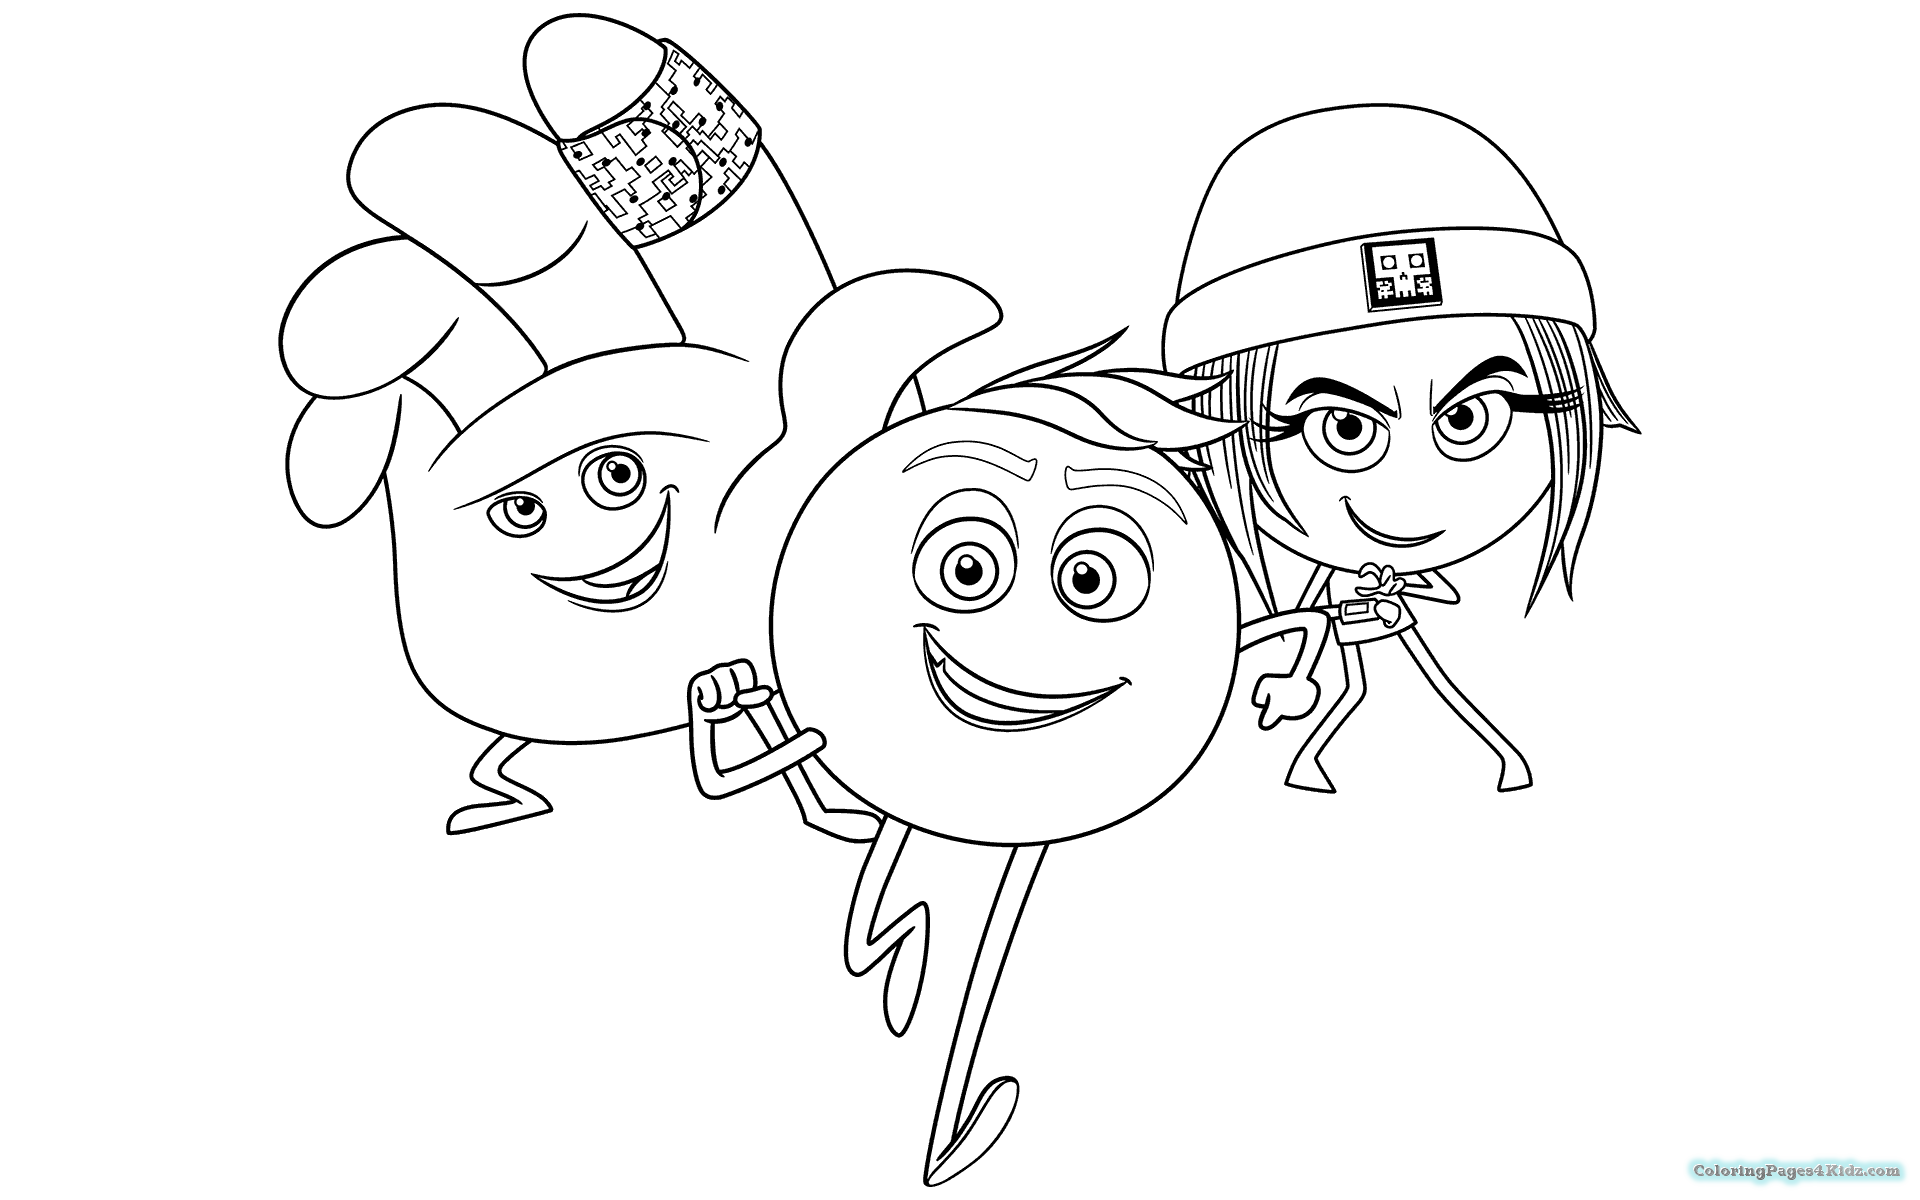 1920x1200 Black And White Coloring Pages Eggplant Emoji Coloring Pages